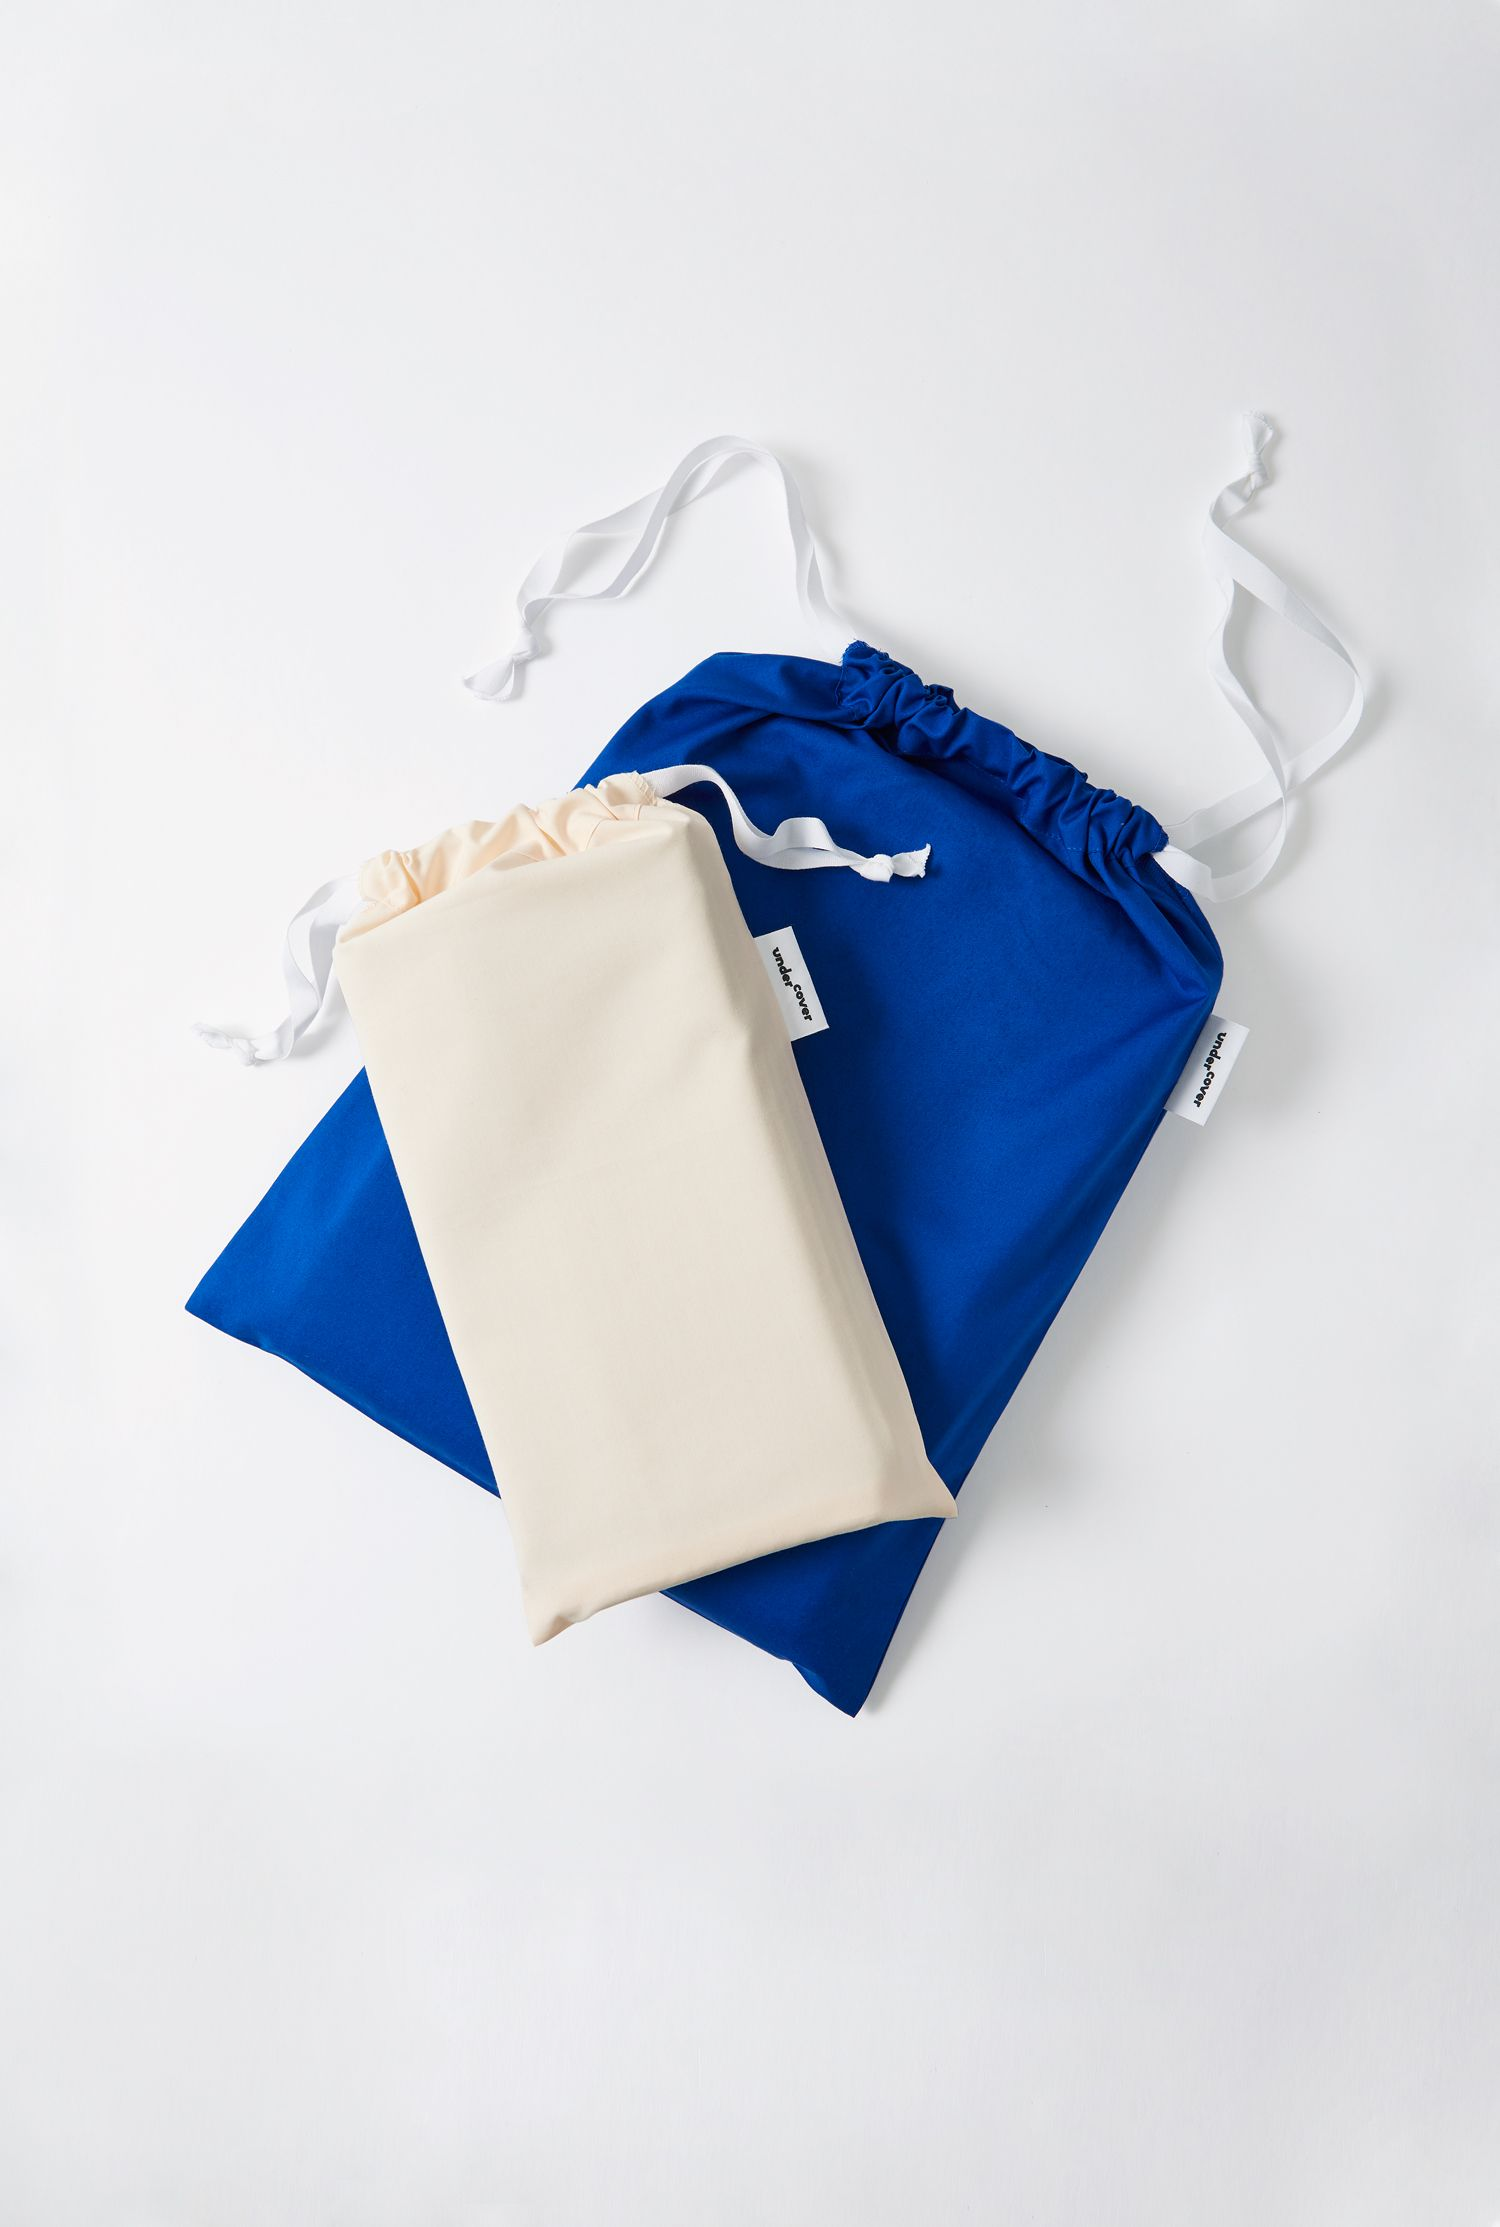 All our items come in matching drawstring bags! We also